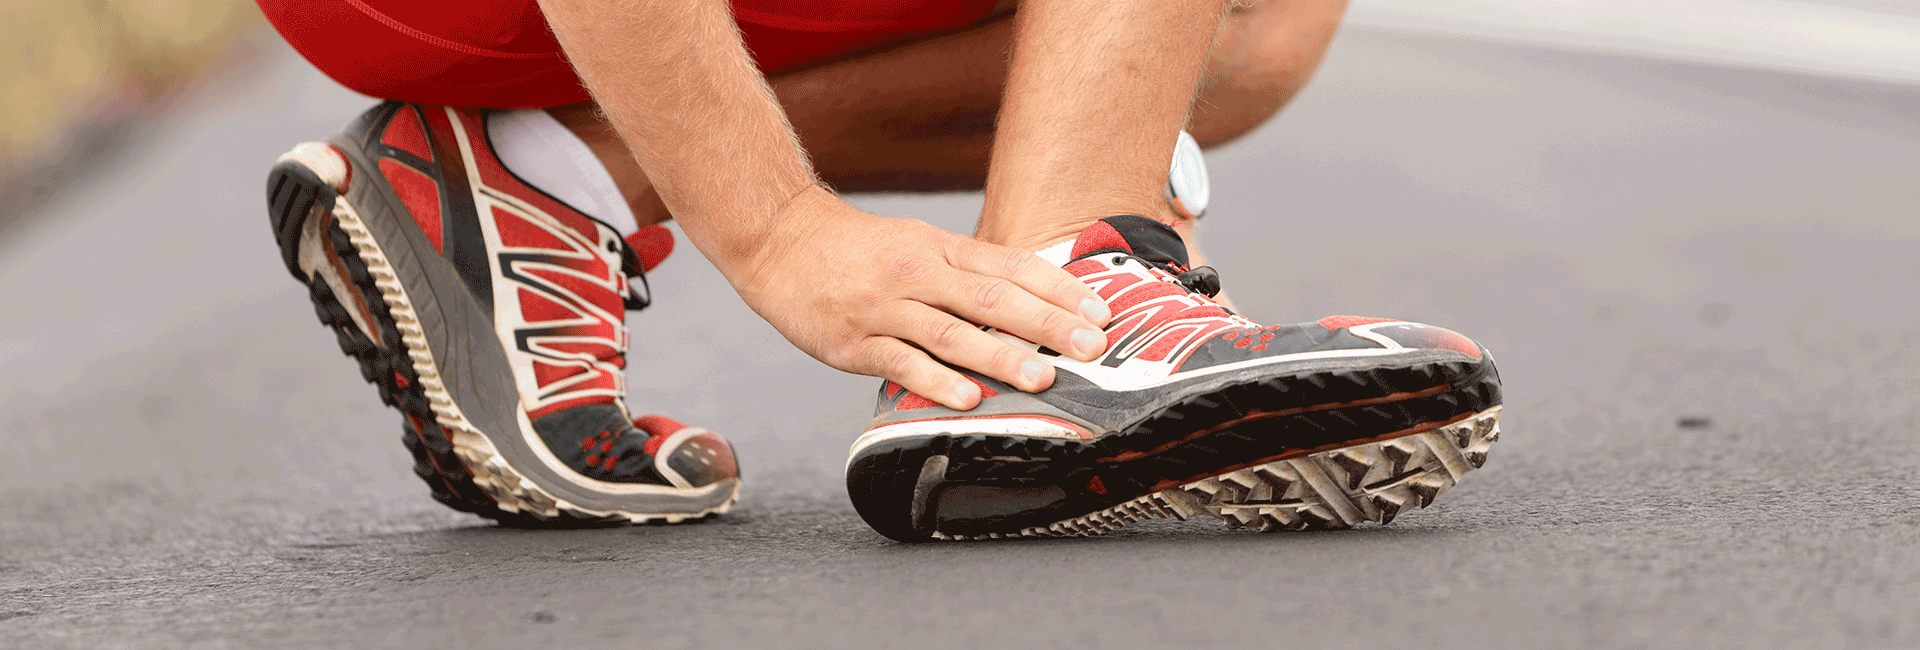 What-to-do-about-recurring-ankle-sprain